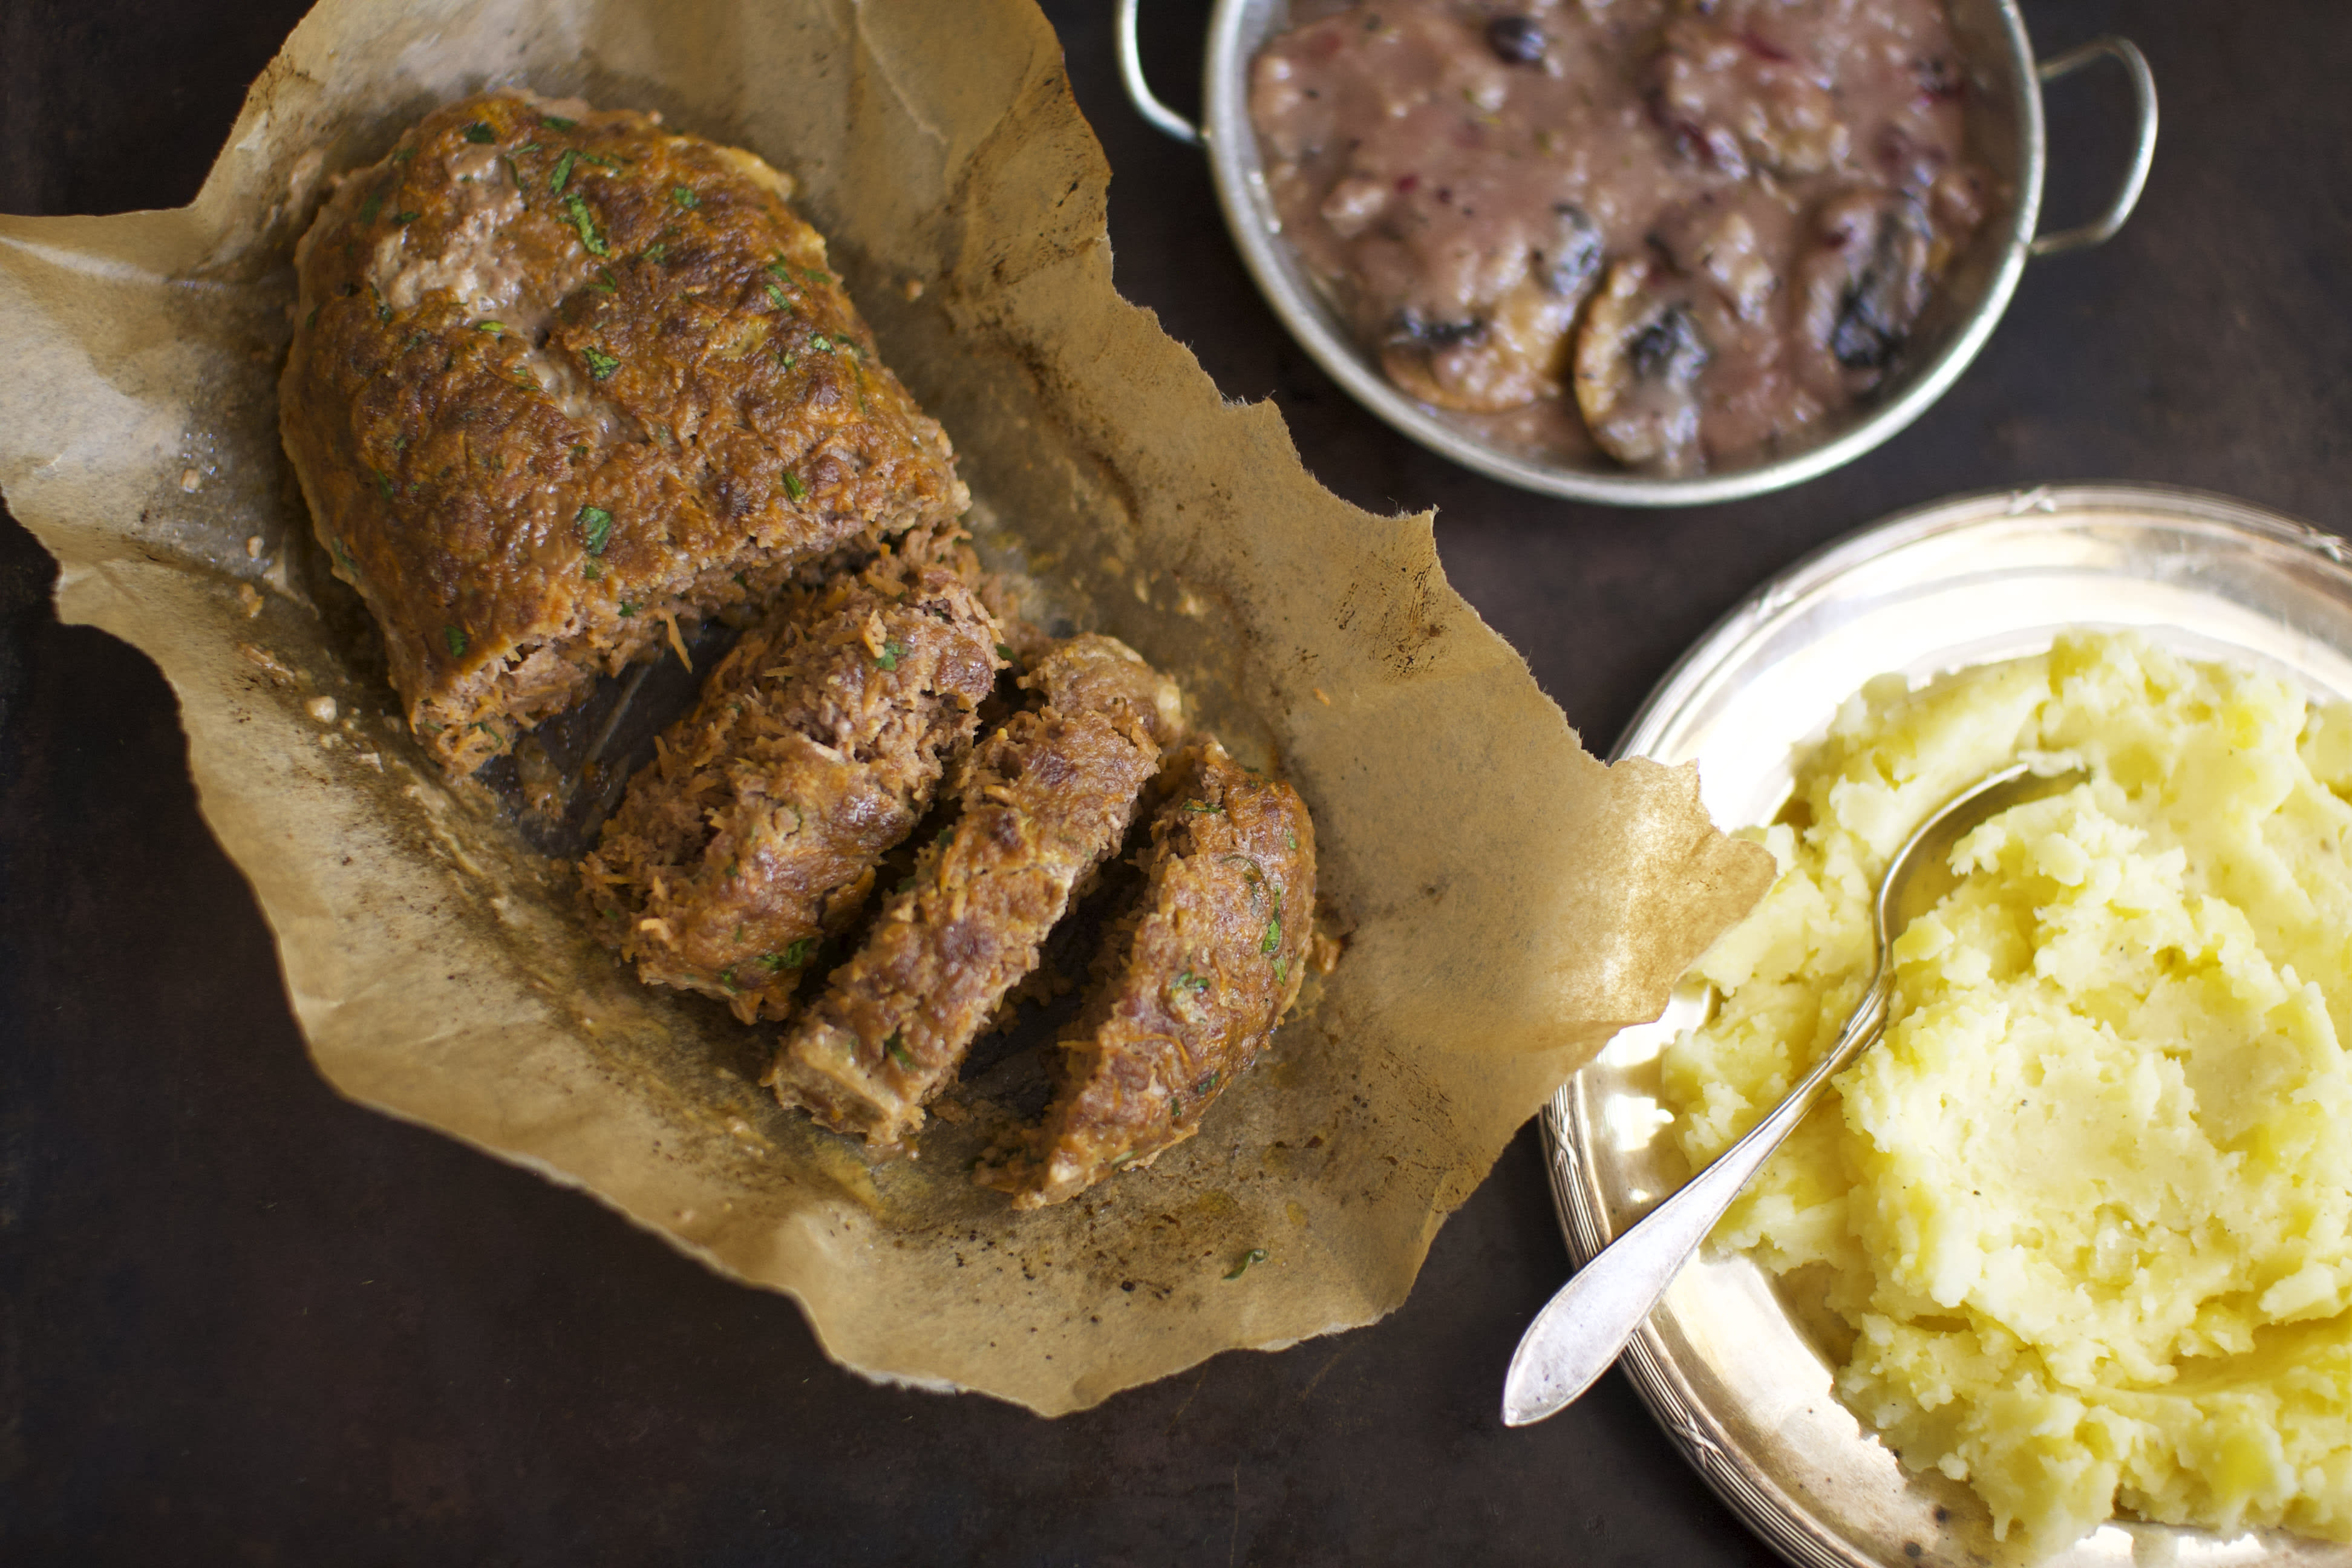 Rustic Meatloaf with Mash and Mushroom Gravy